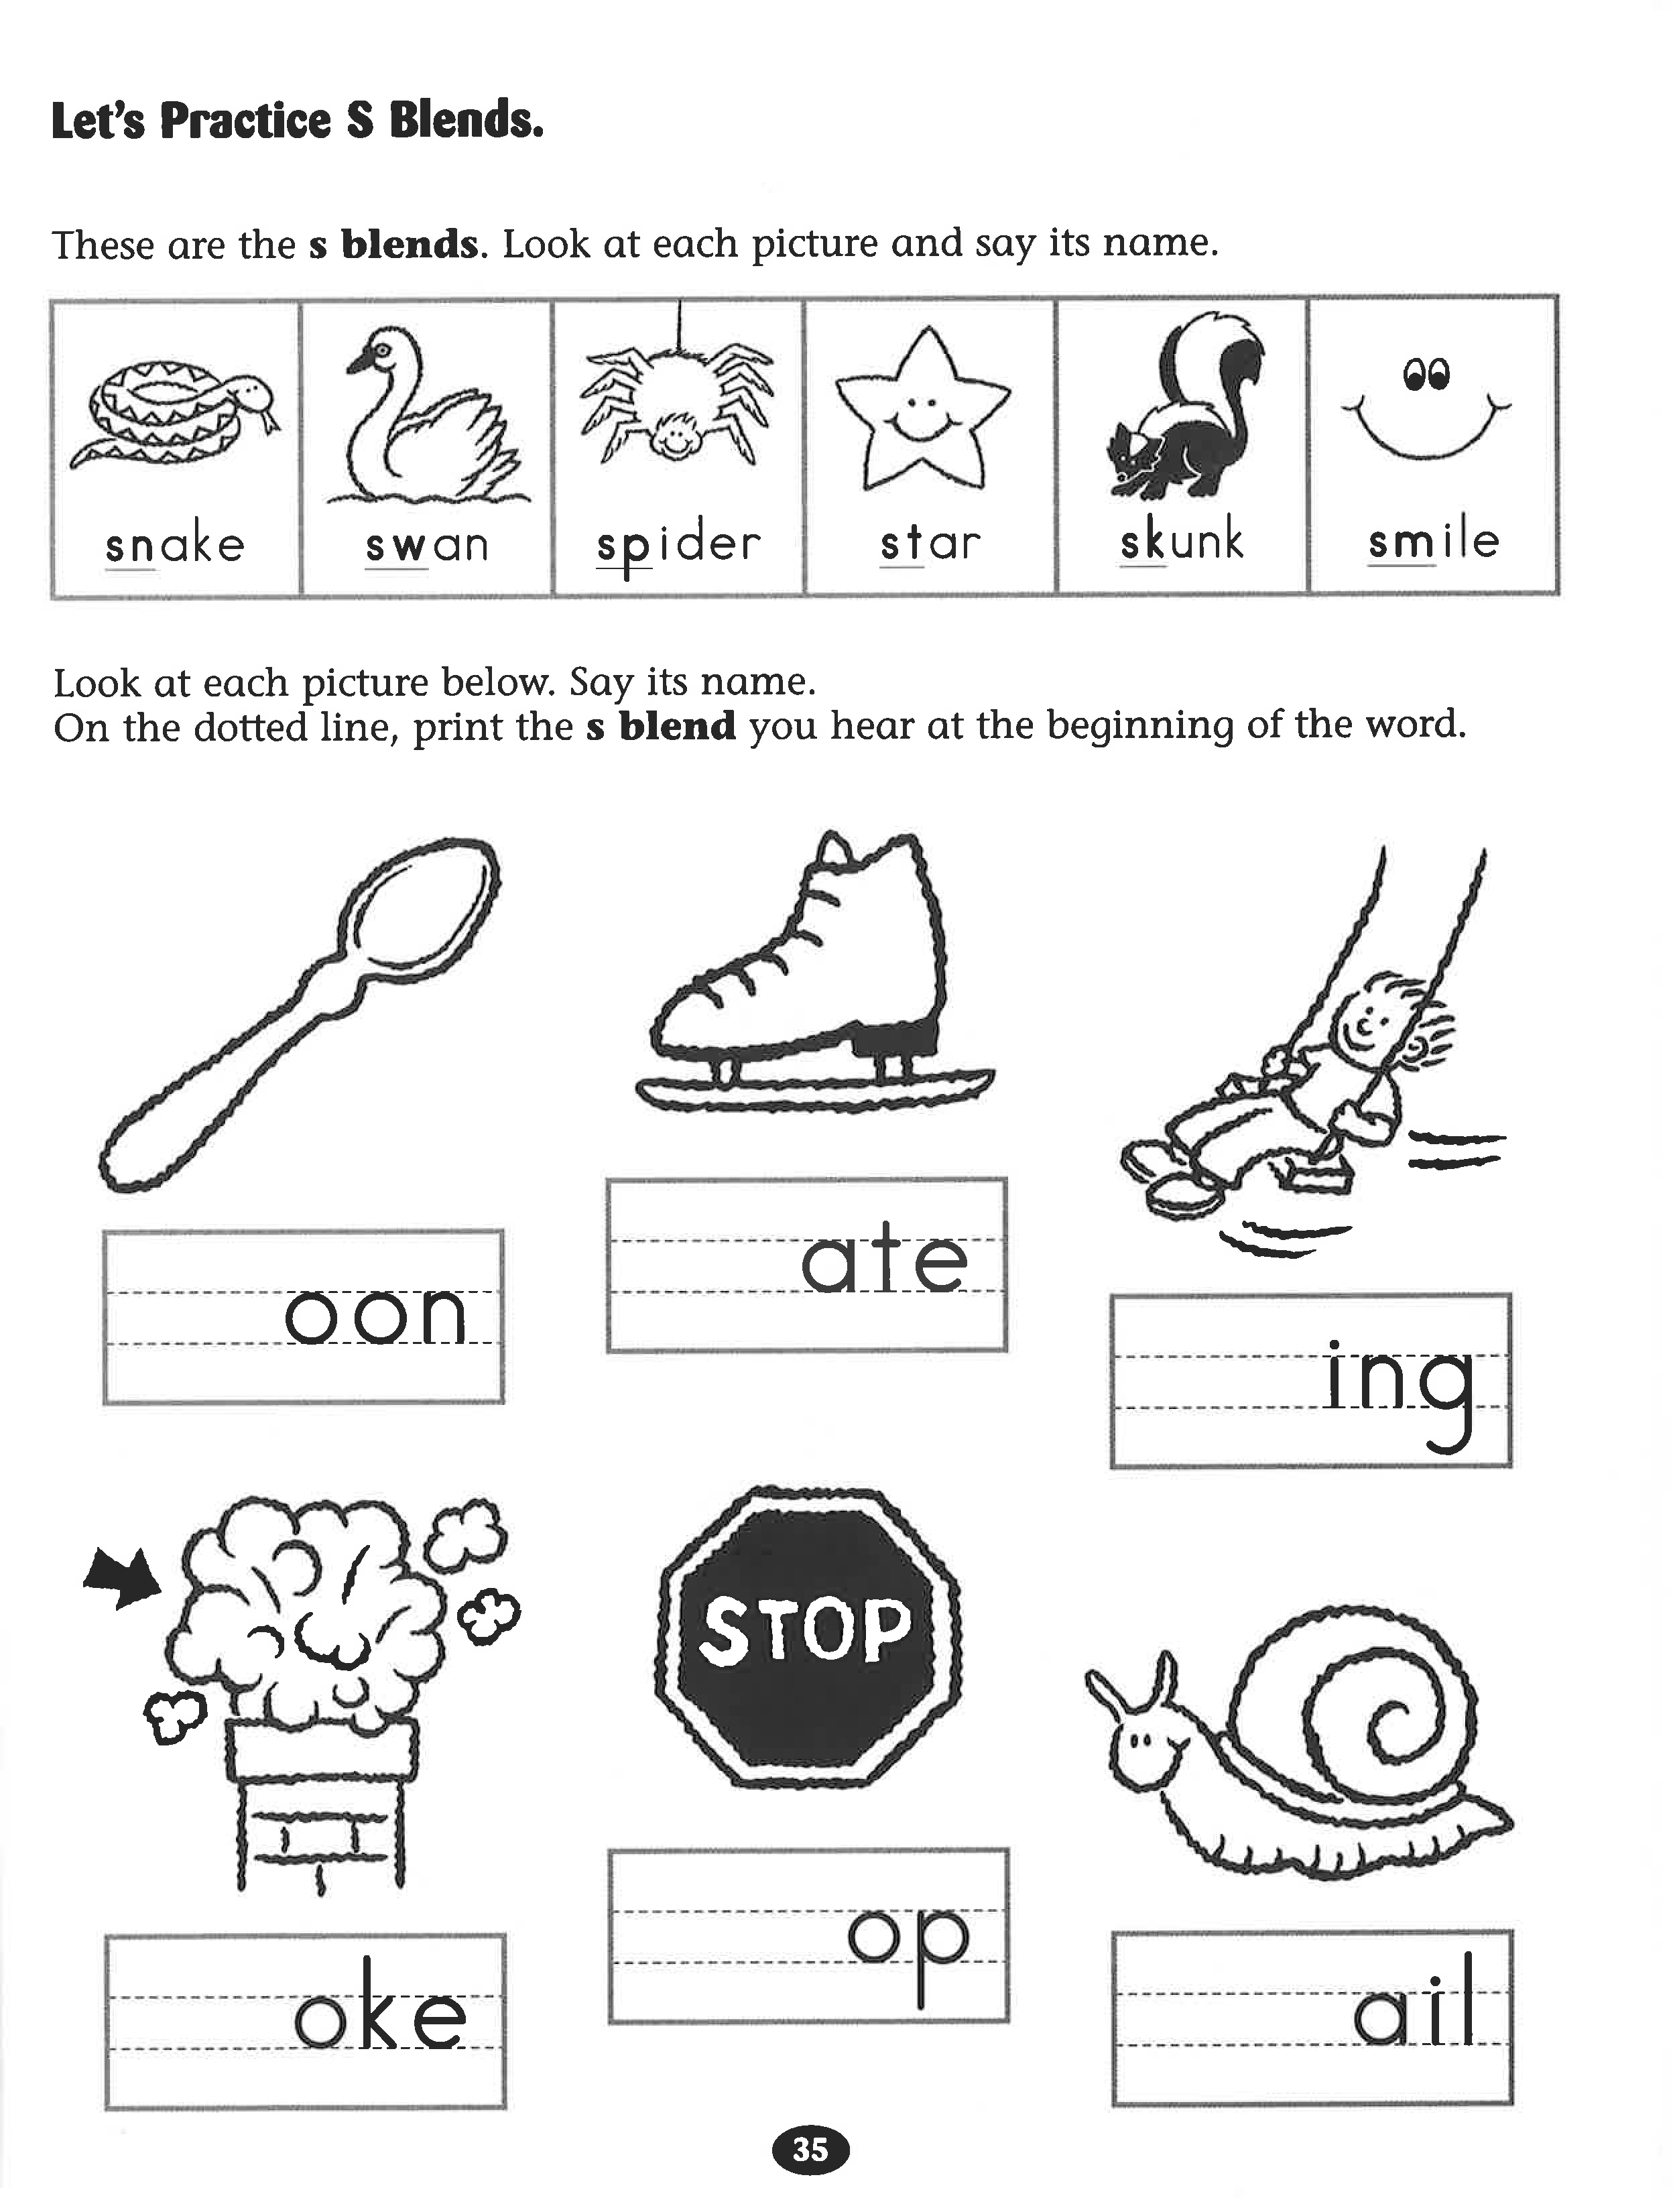 Worksheets S Blend Worksheets lets practice s blends worksheet rockin reading tips and worksheet